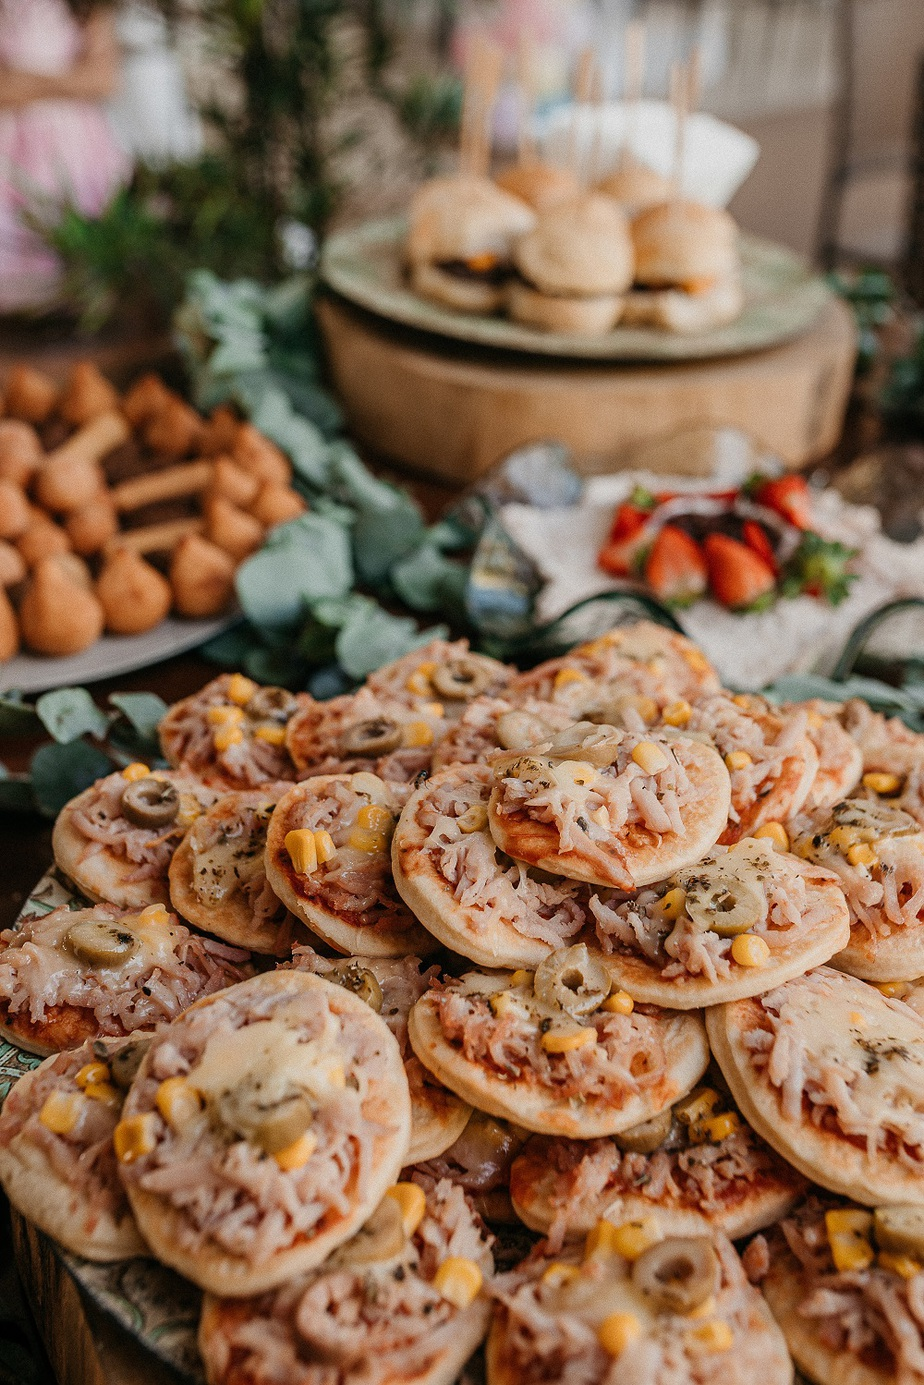 Check out these finger foods for wedding reception! These are Crowd-pleasing wedding reception finger foods for your celebration. Luxury cheap wedding reception finger food ideas.